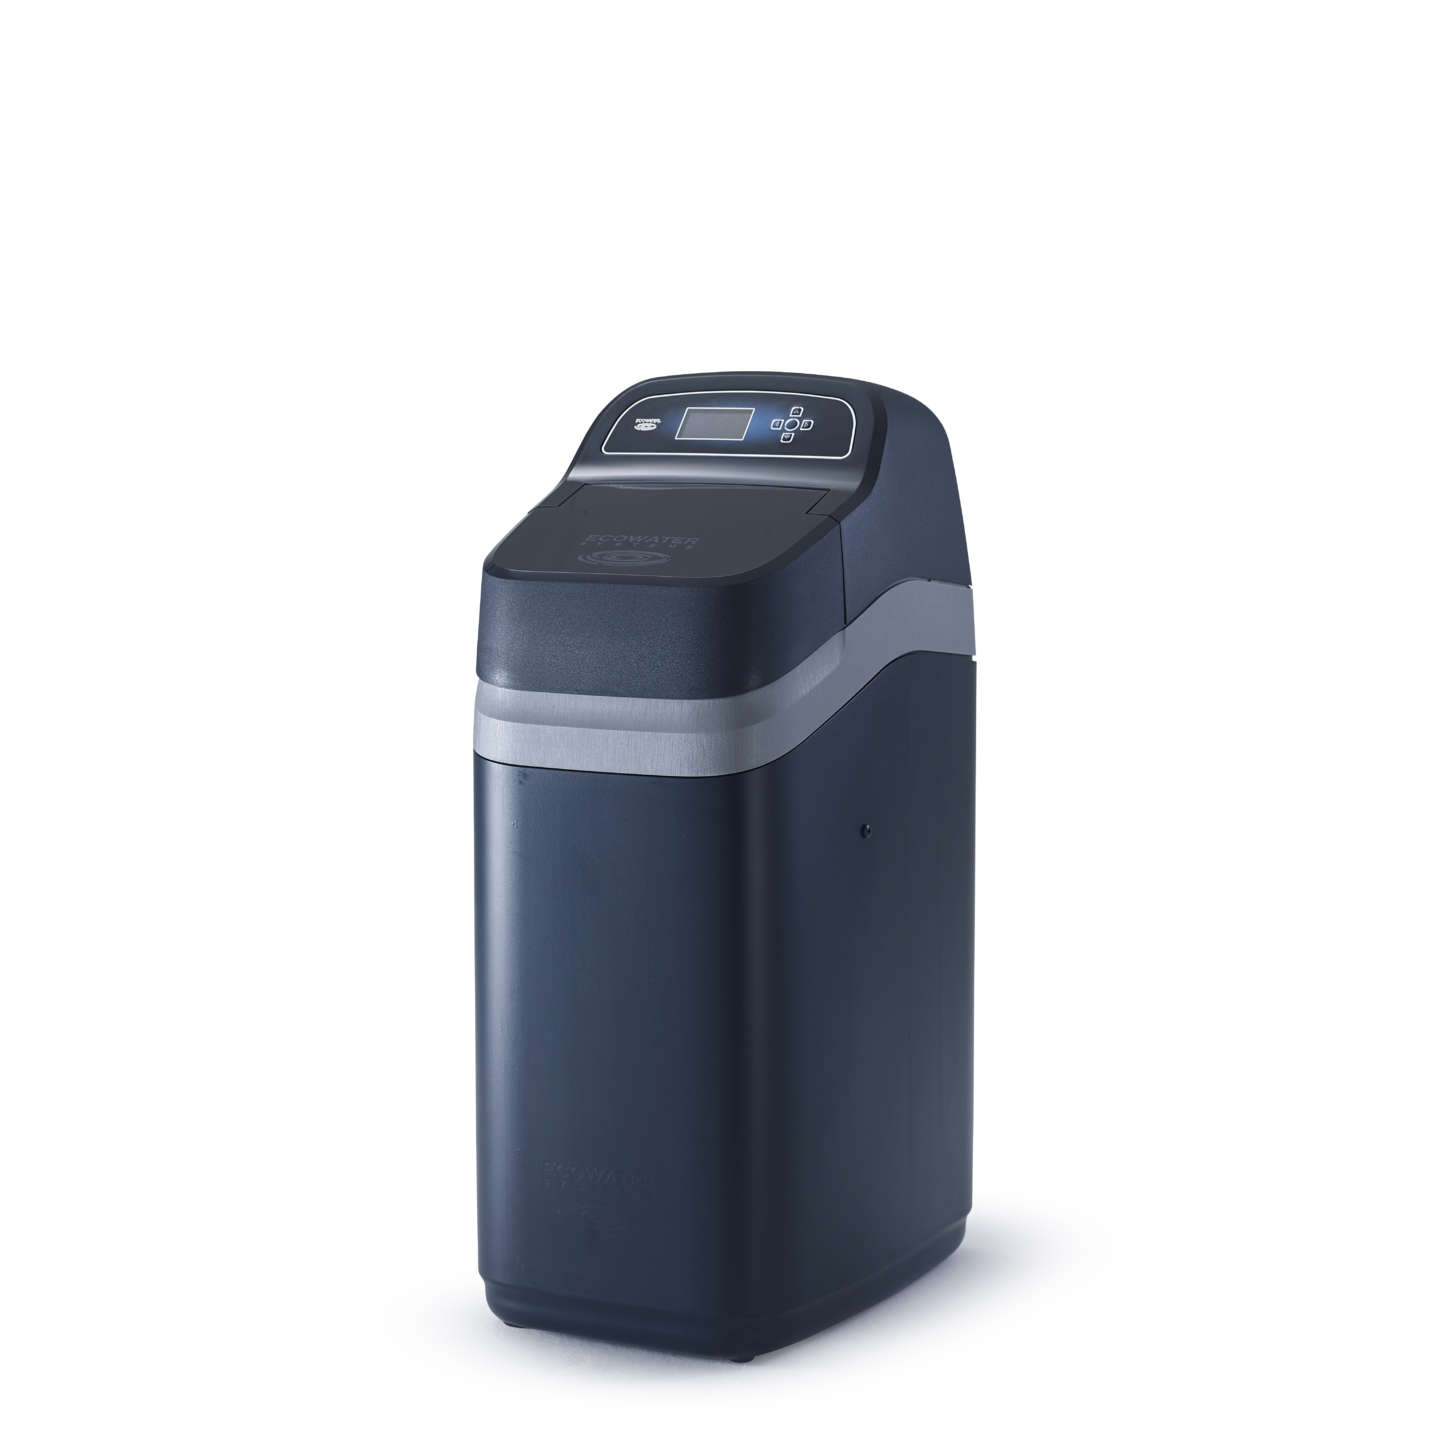 Ecowater Evolution Boost 300 Water Softener Classic